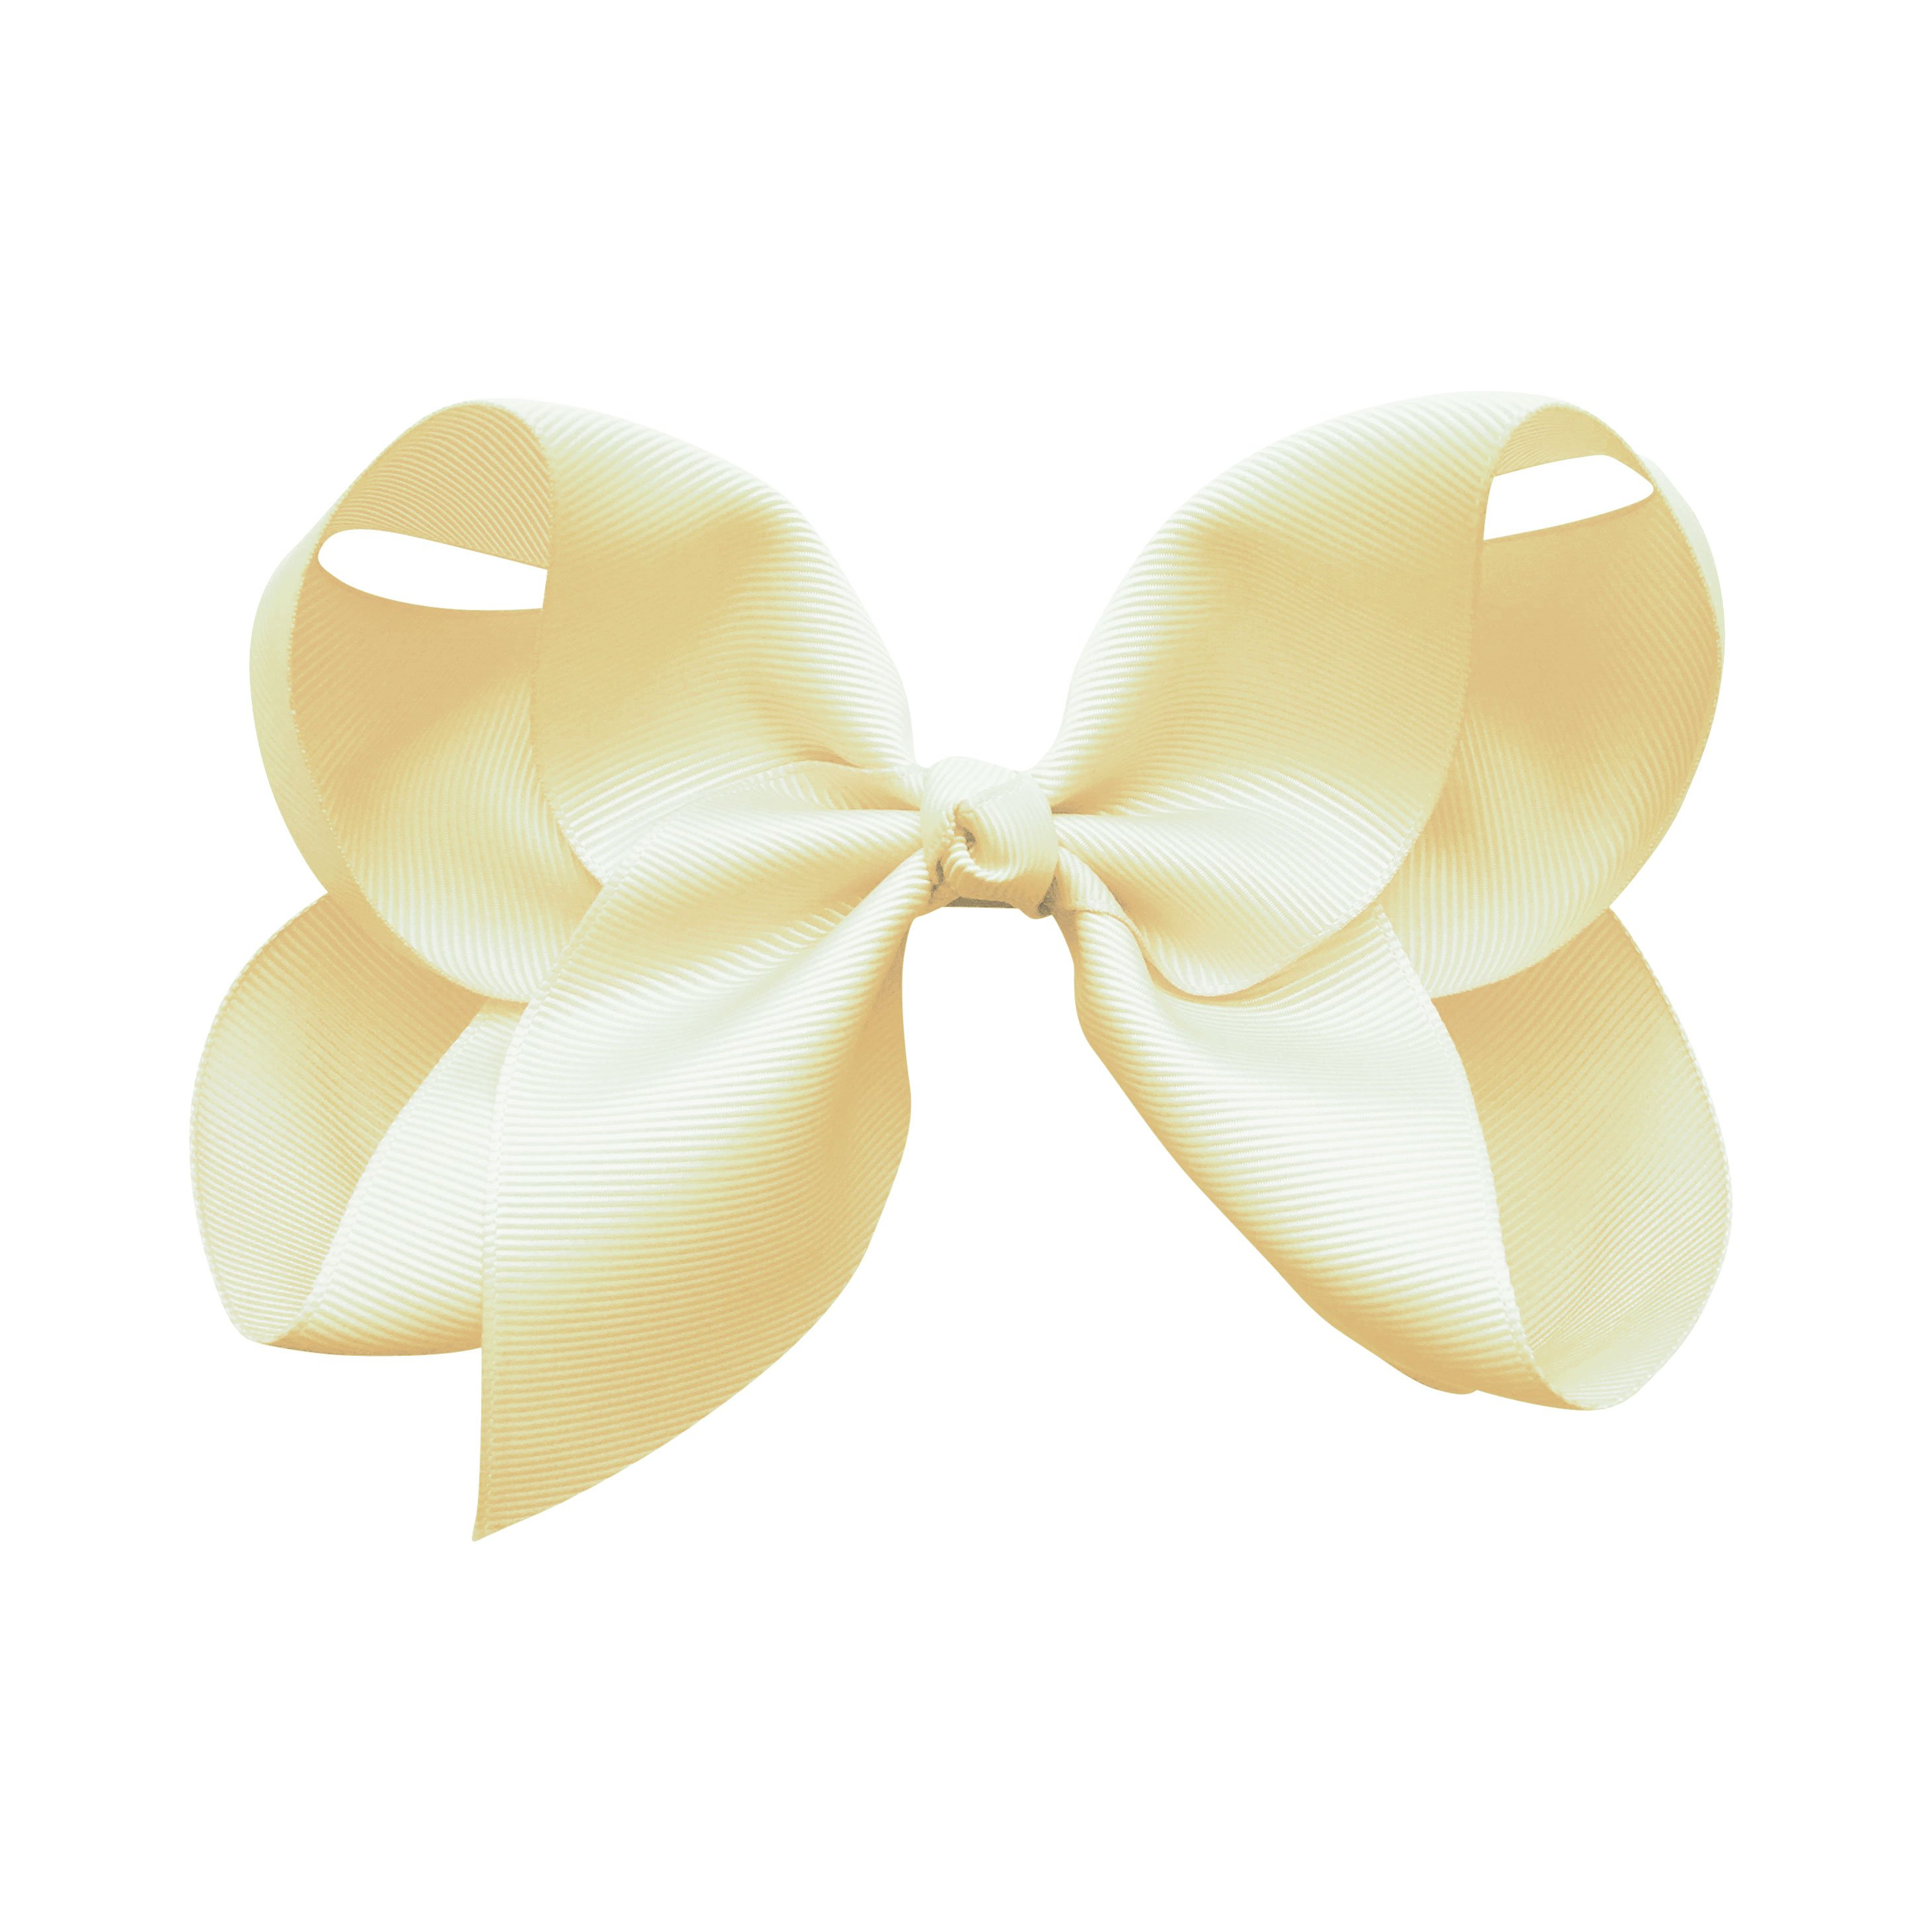 Image of Jumbo Boutique Bow - alligator clip - ivory